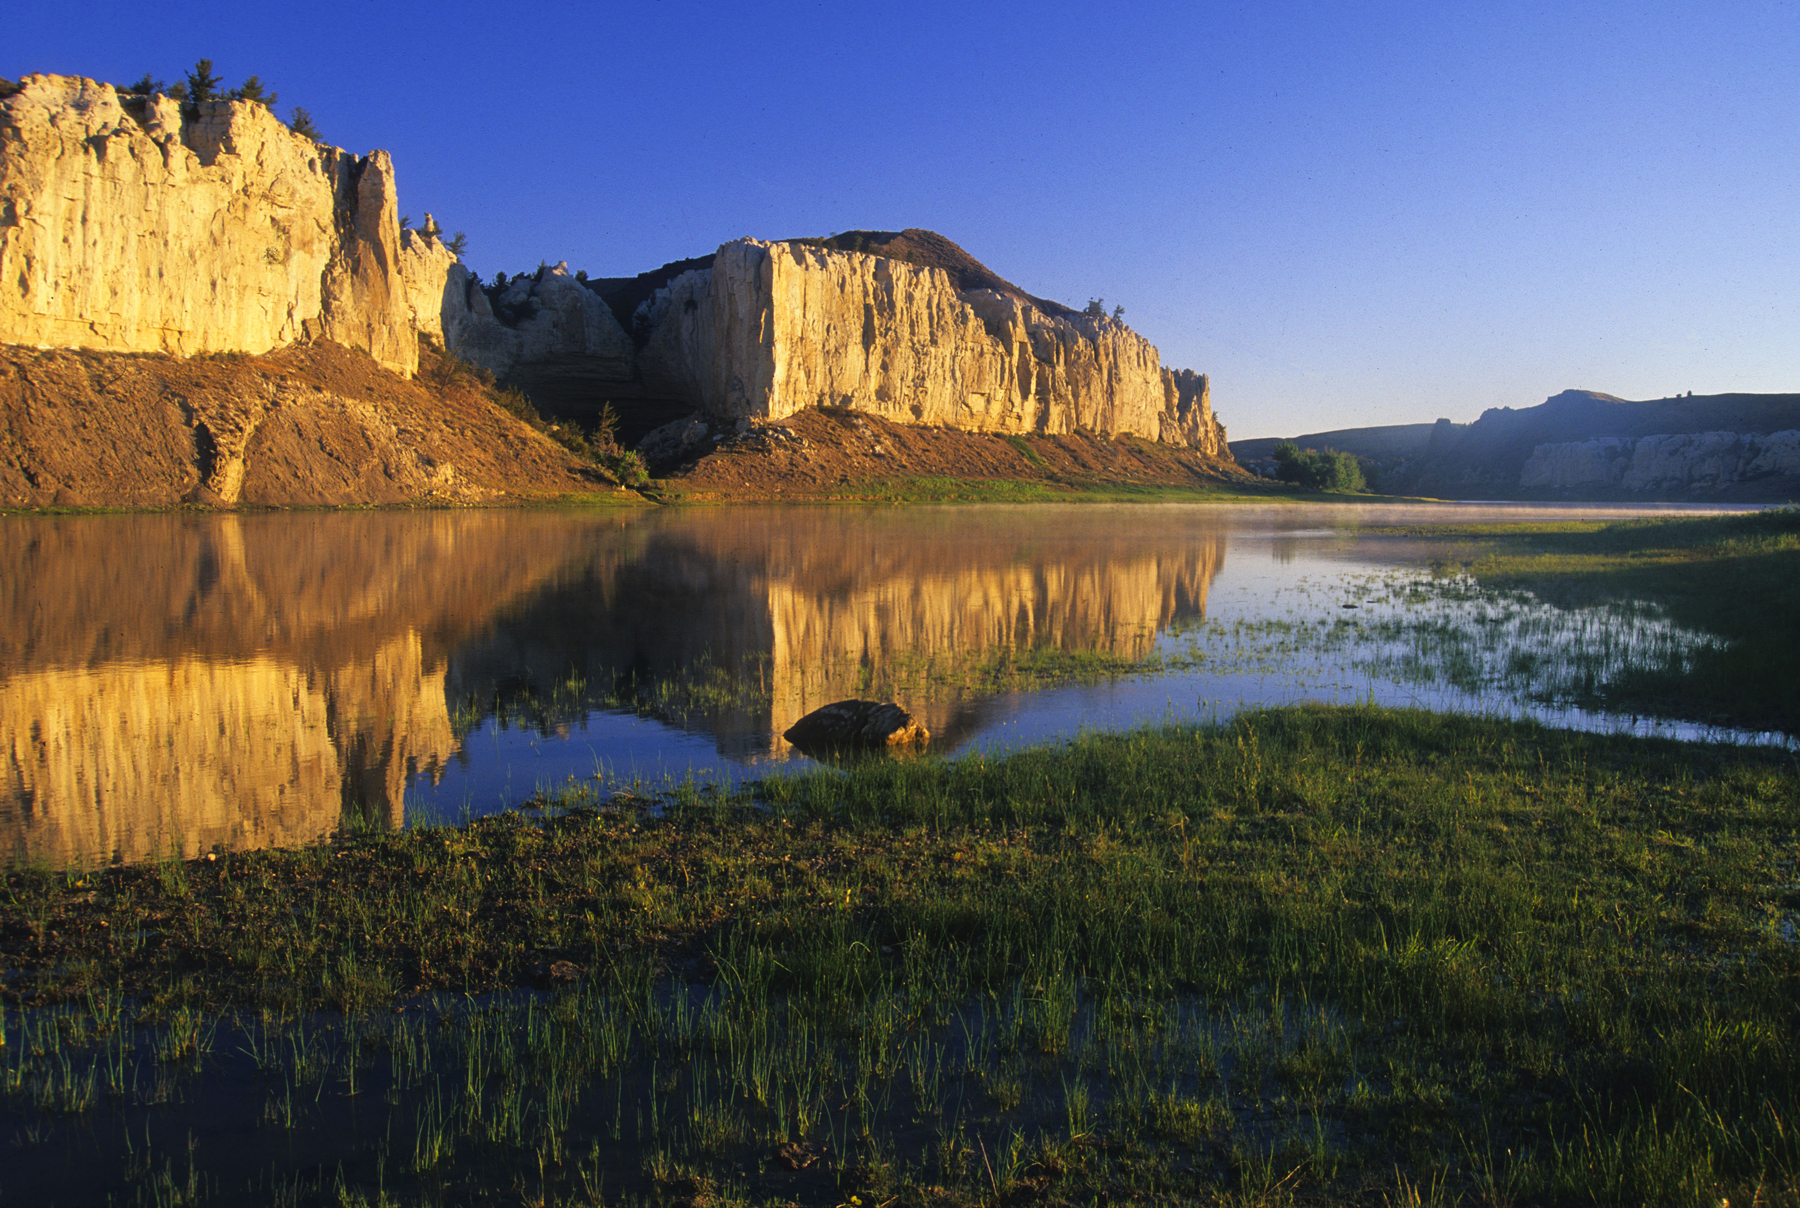 Montana's Greatest Wonder: The Missouri River (Part 4 of 5)